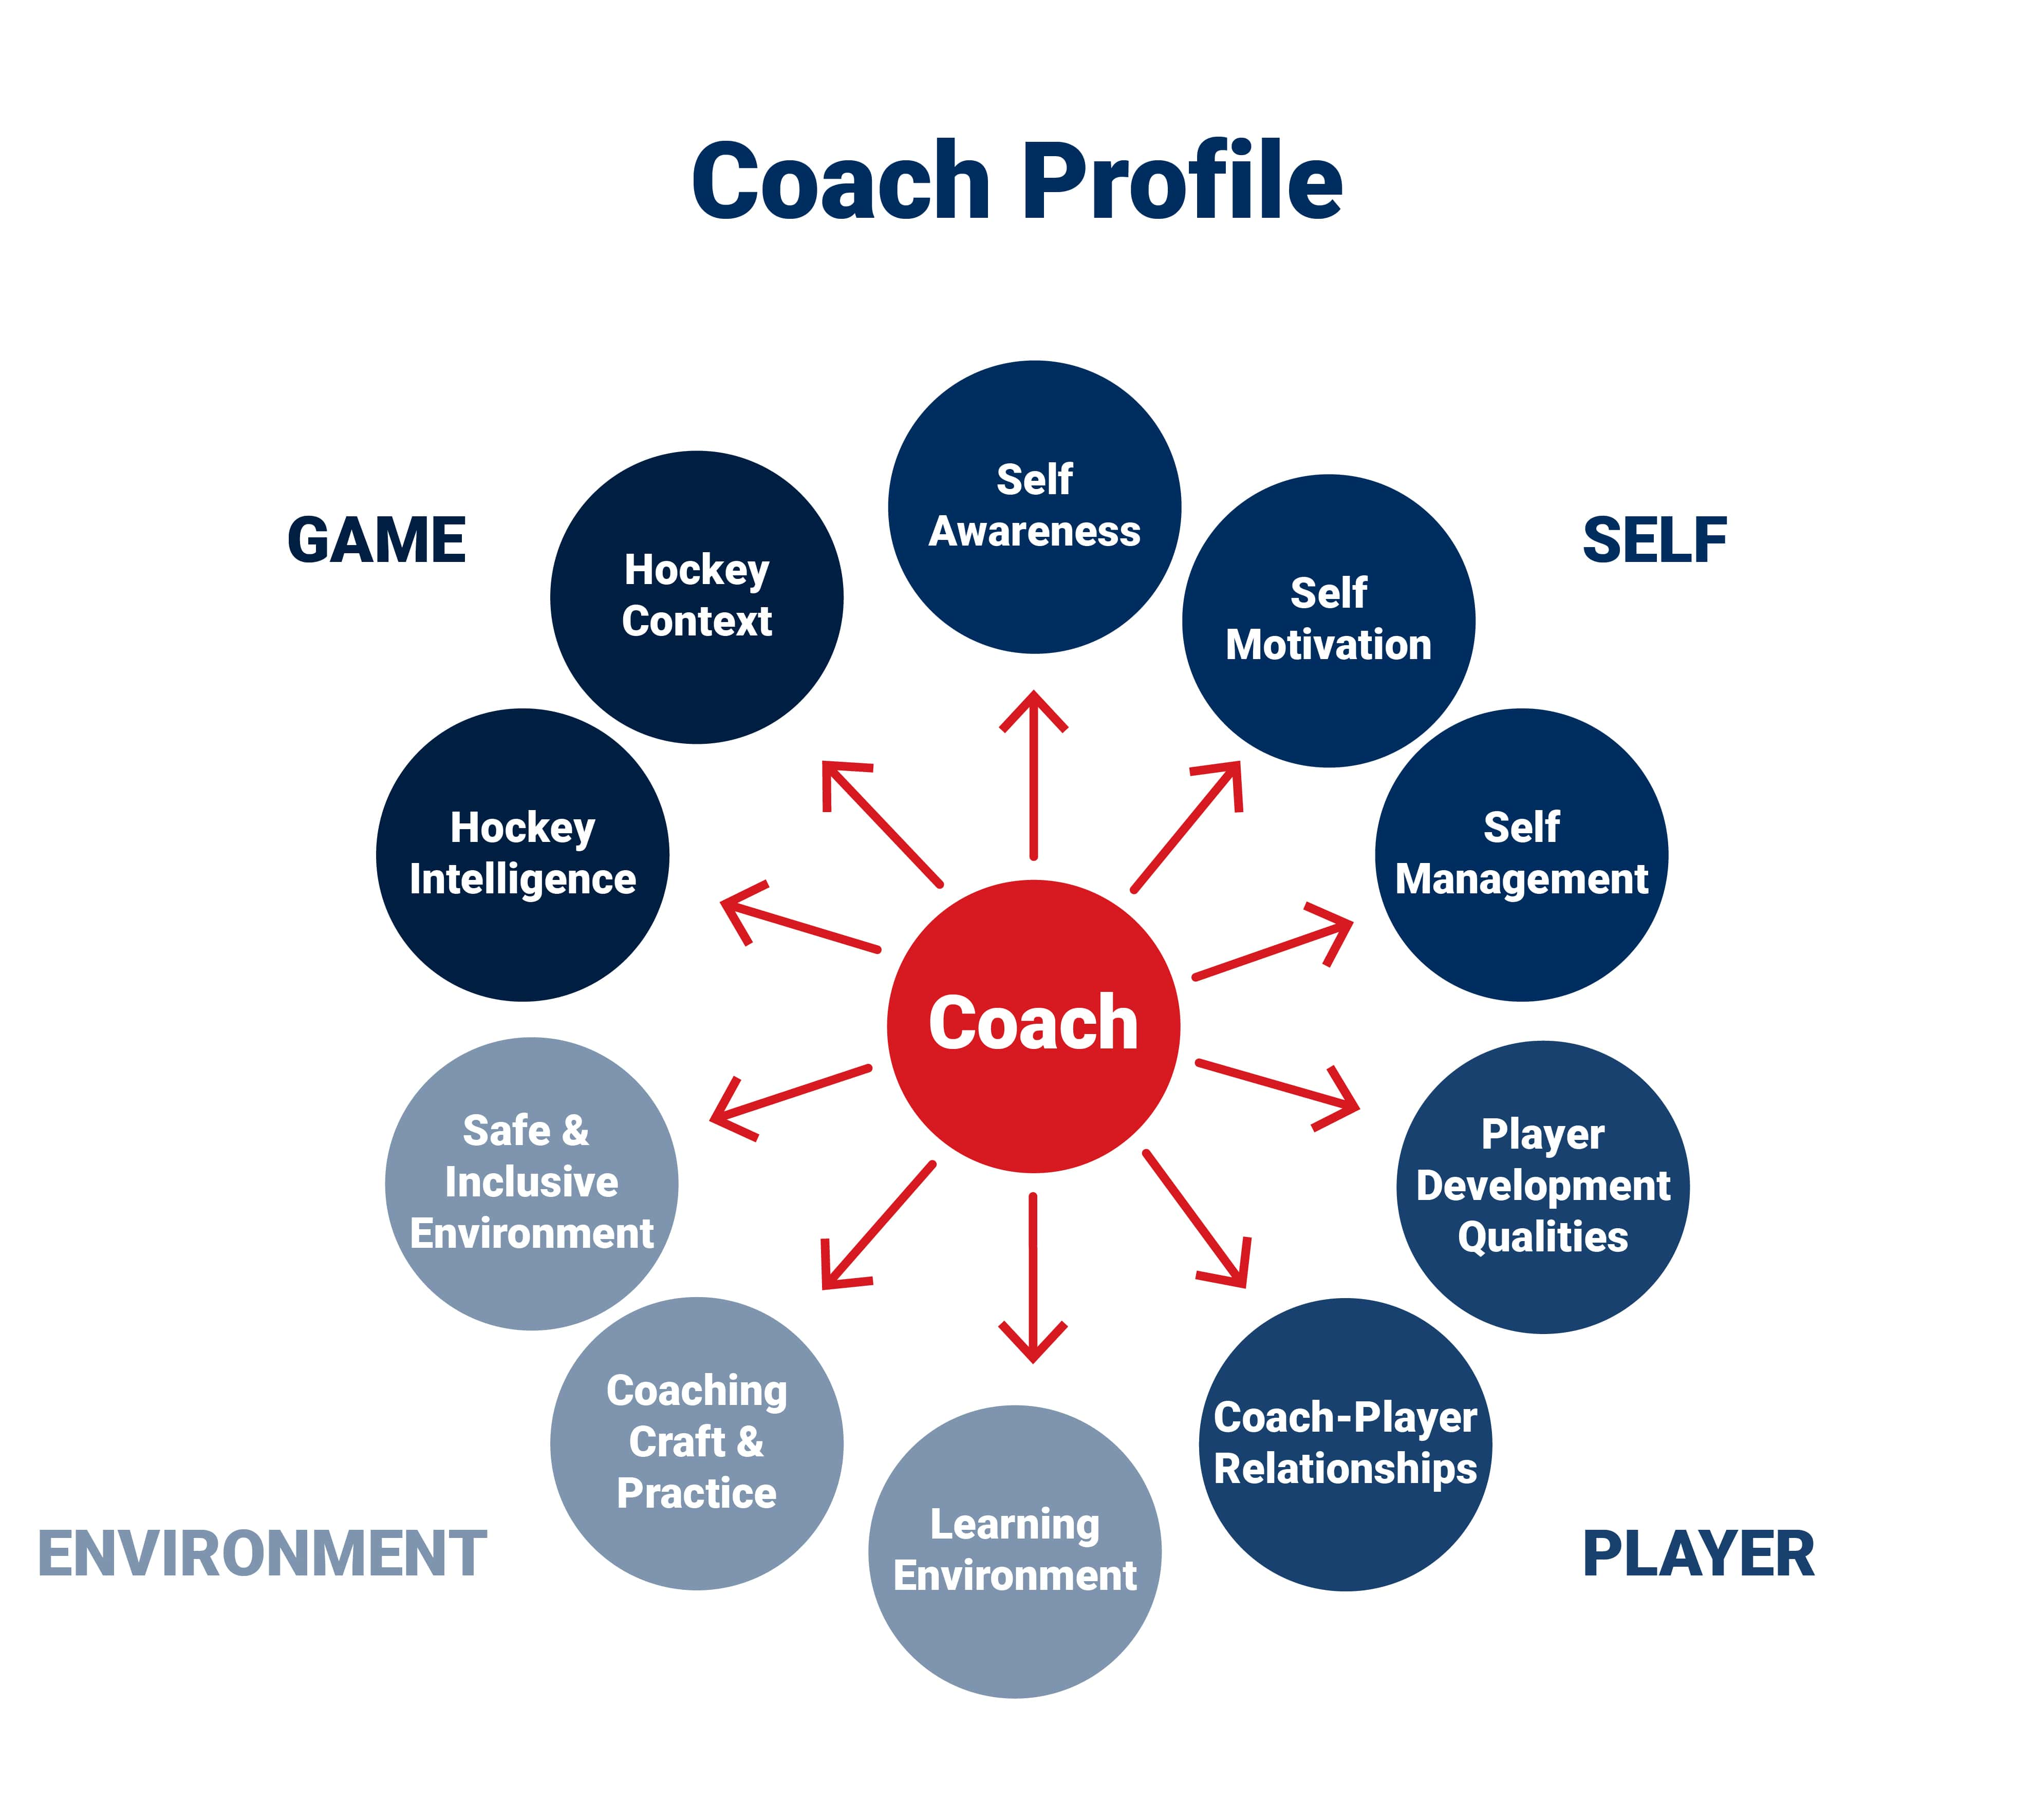 Hockey Coaches Profile - Coach, Self, Player, Environment and Game chart